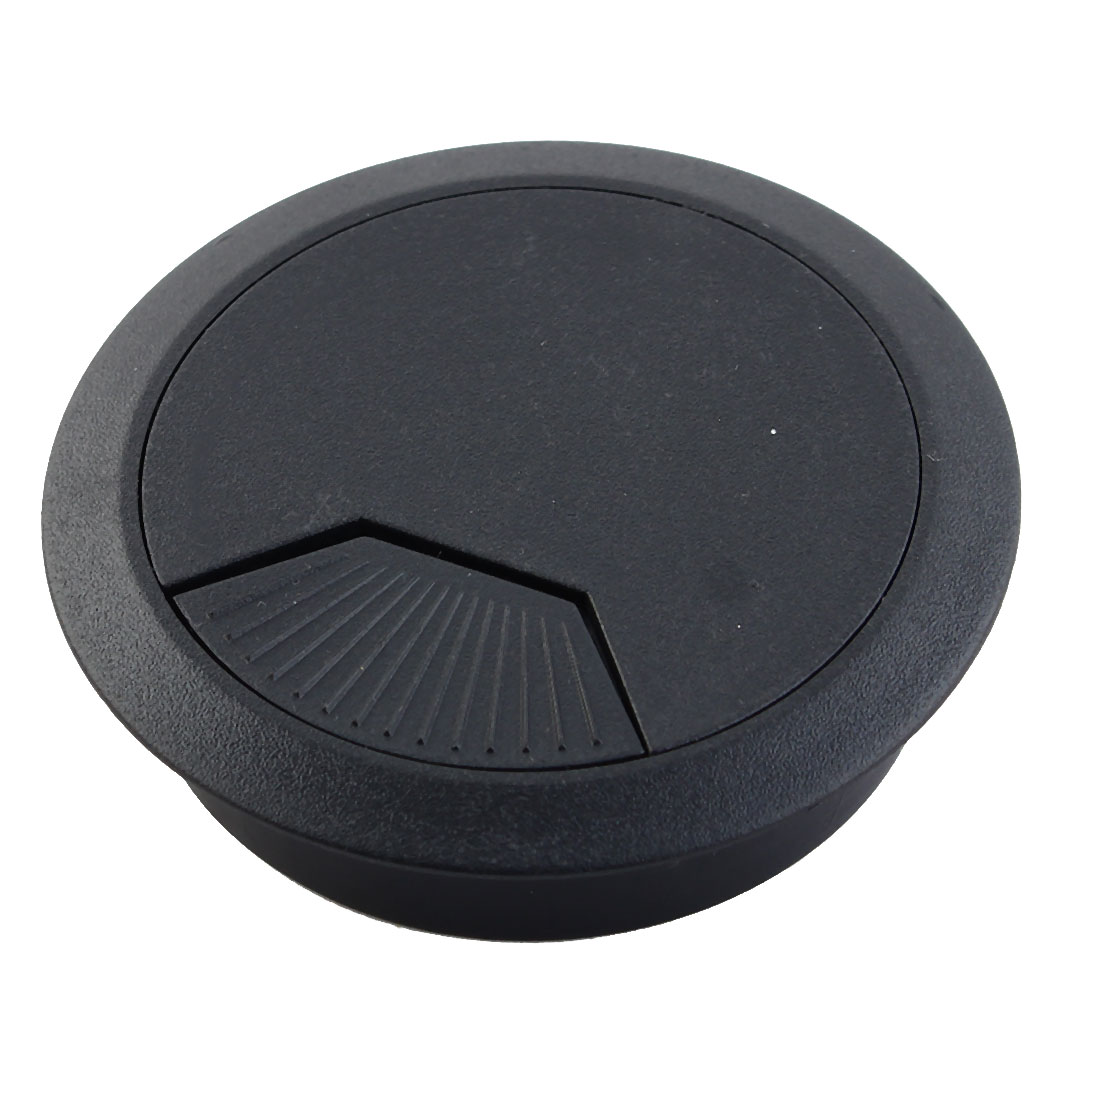 Home Office Desk Table Computer Grommet Cable Wire Hole Cover Black